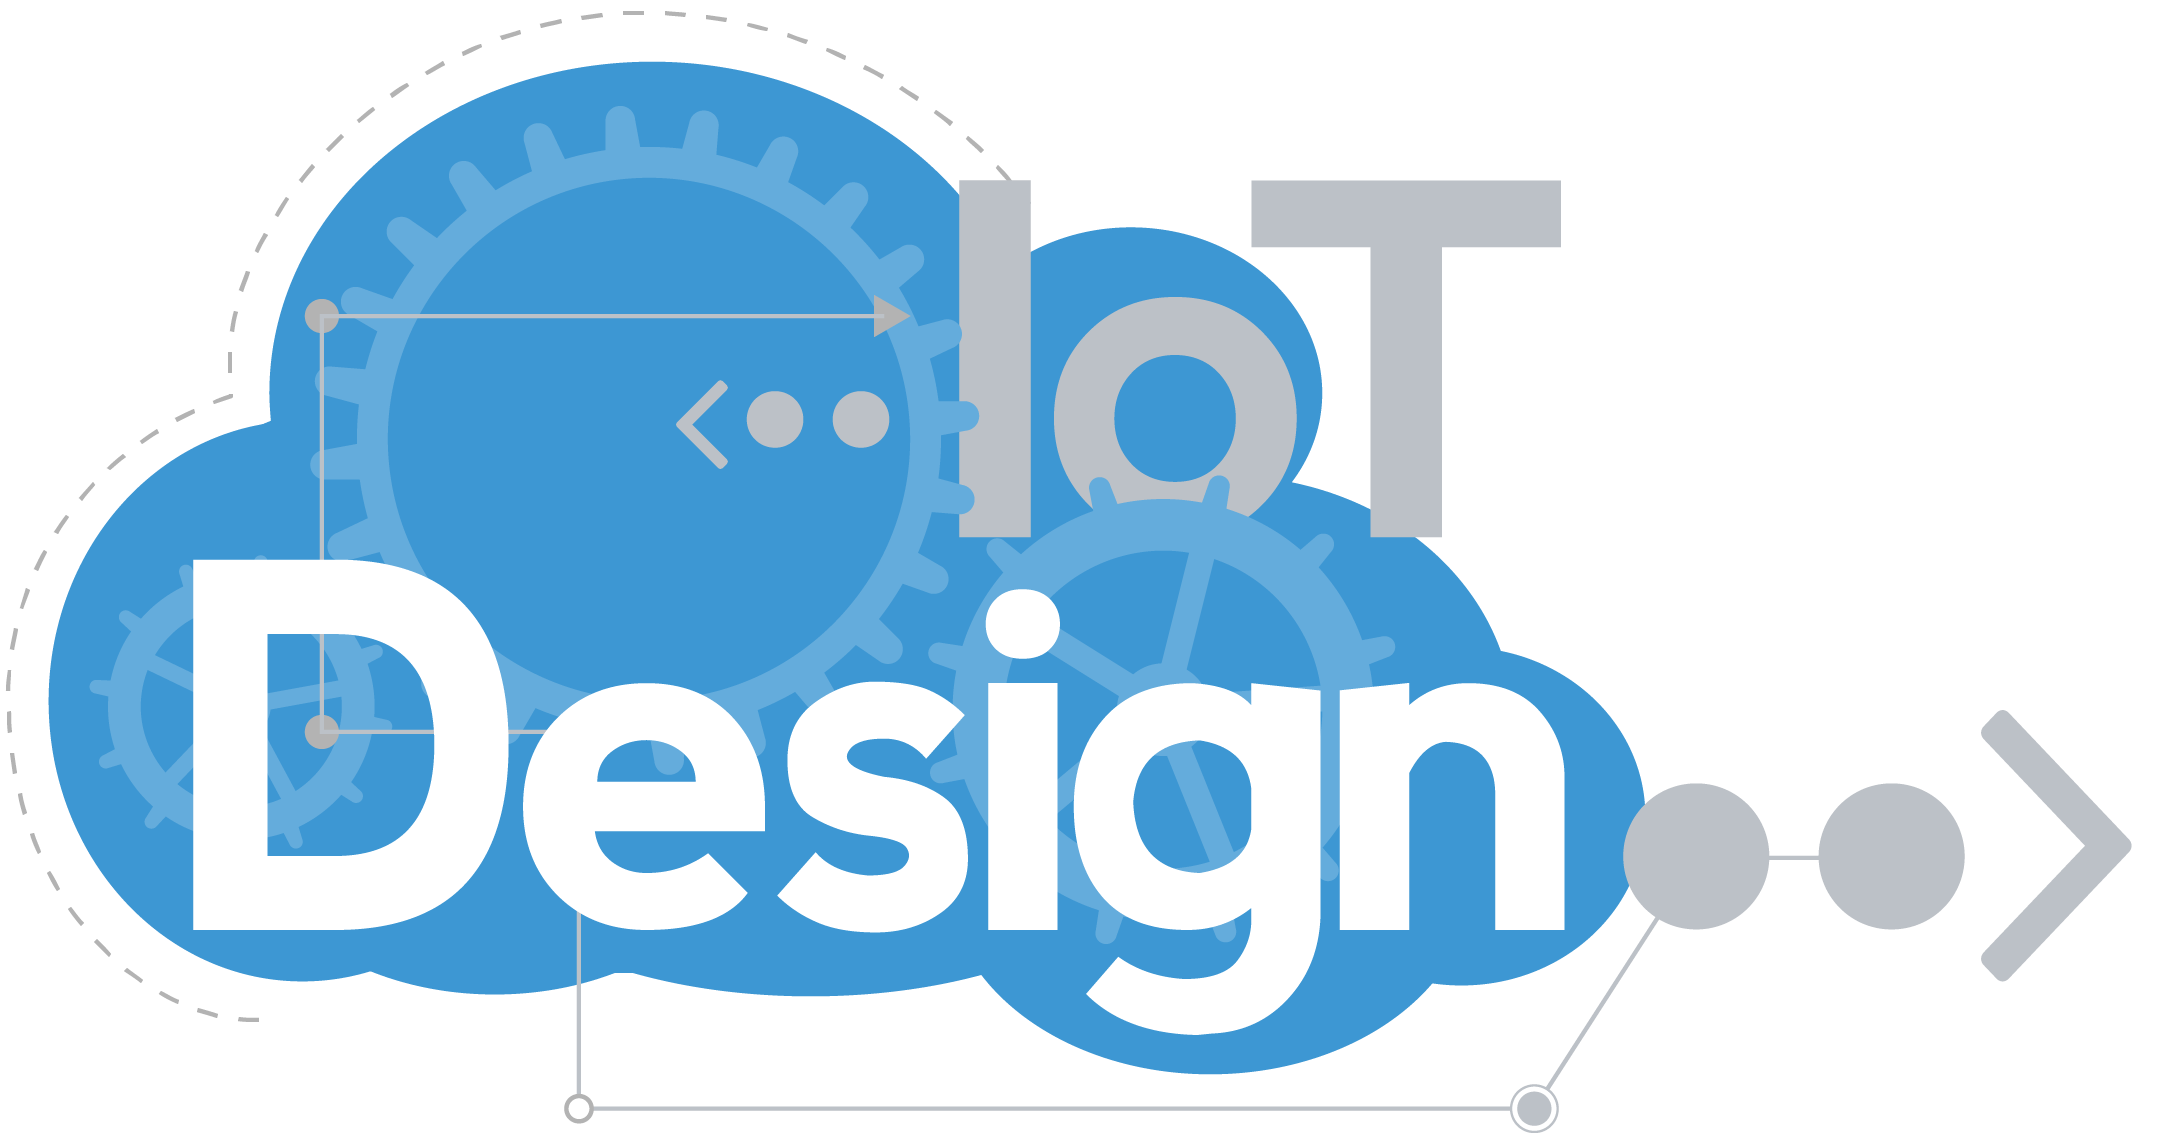 Electronics clipart iot. Design